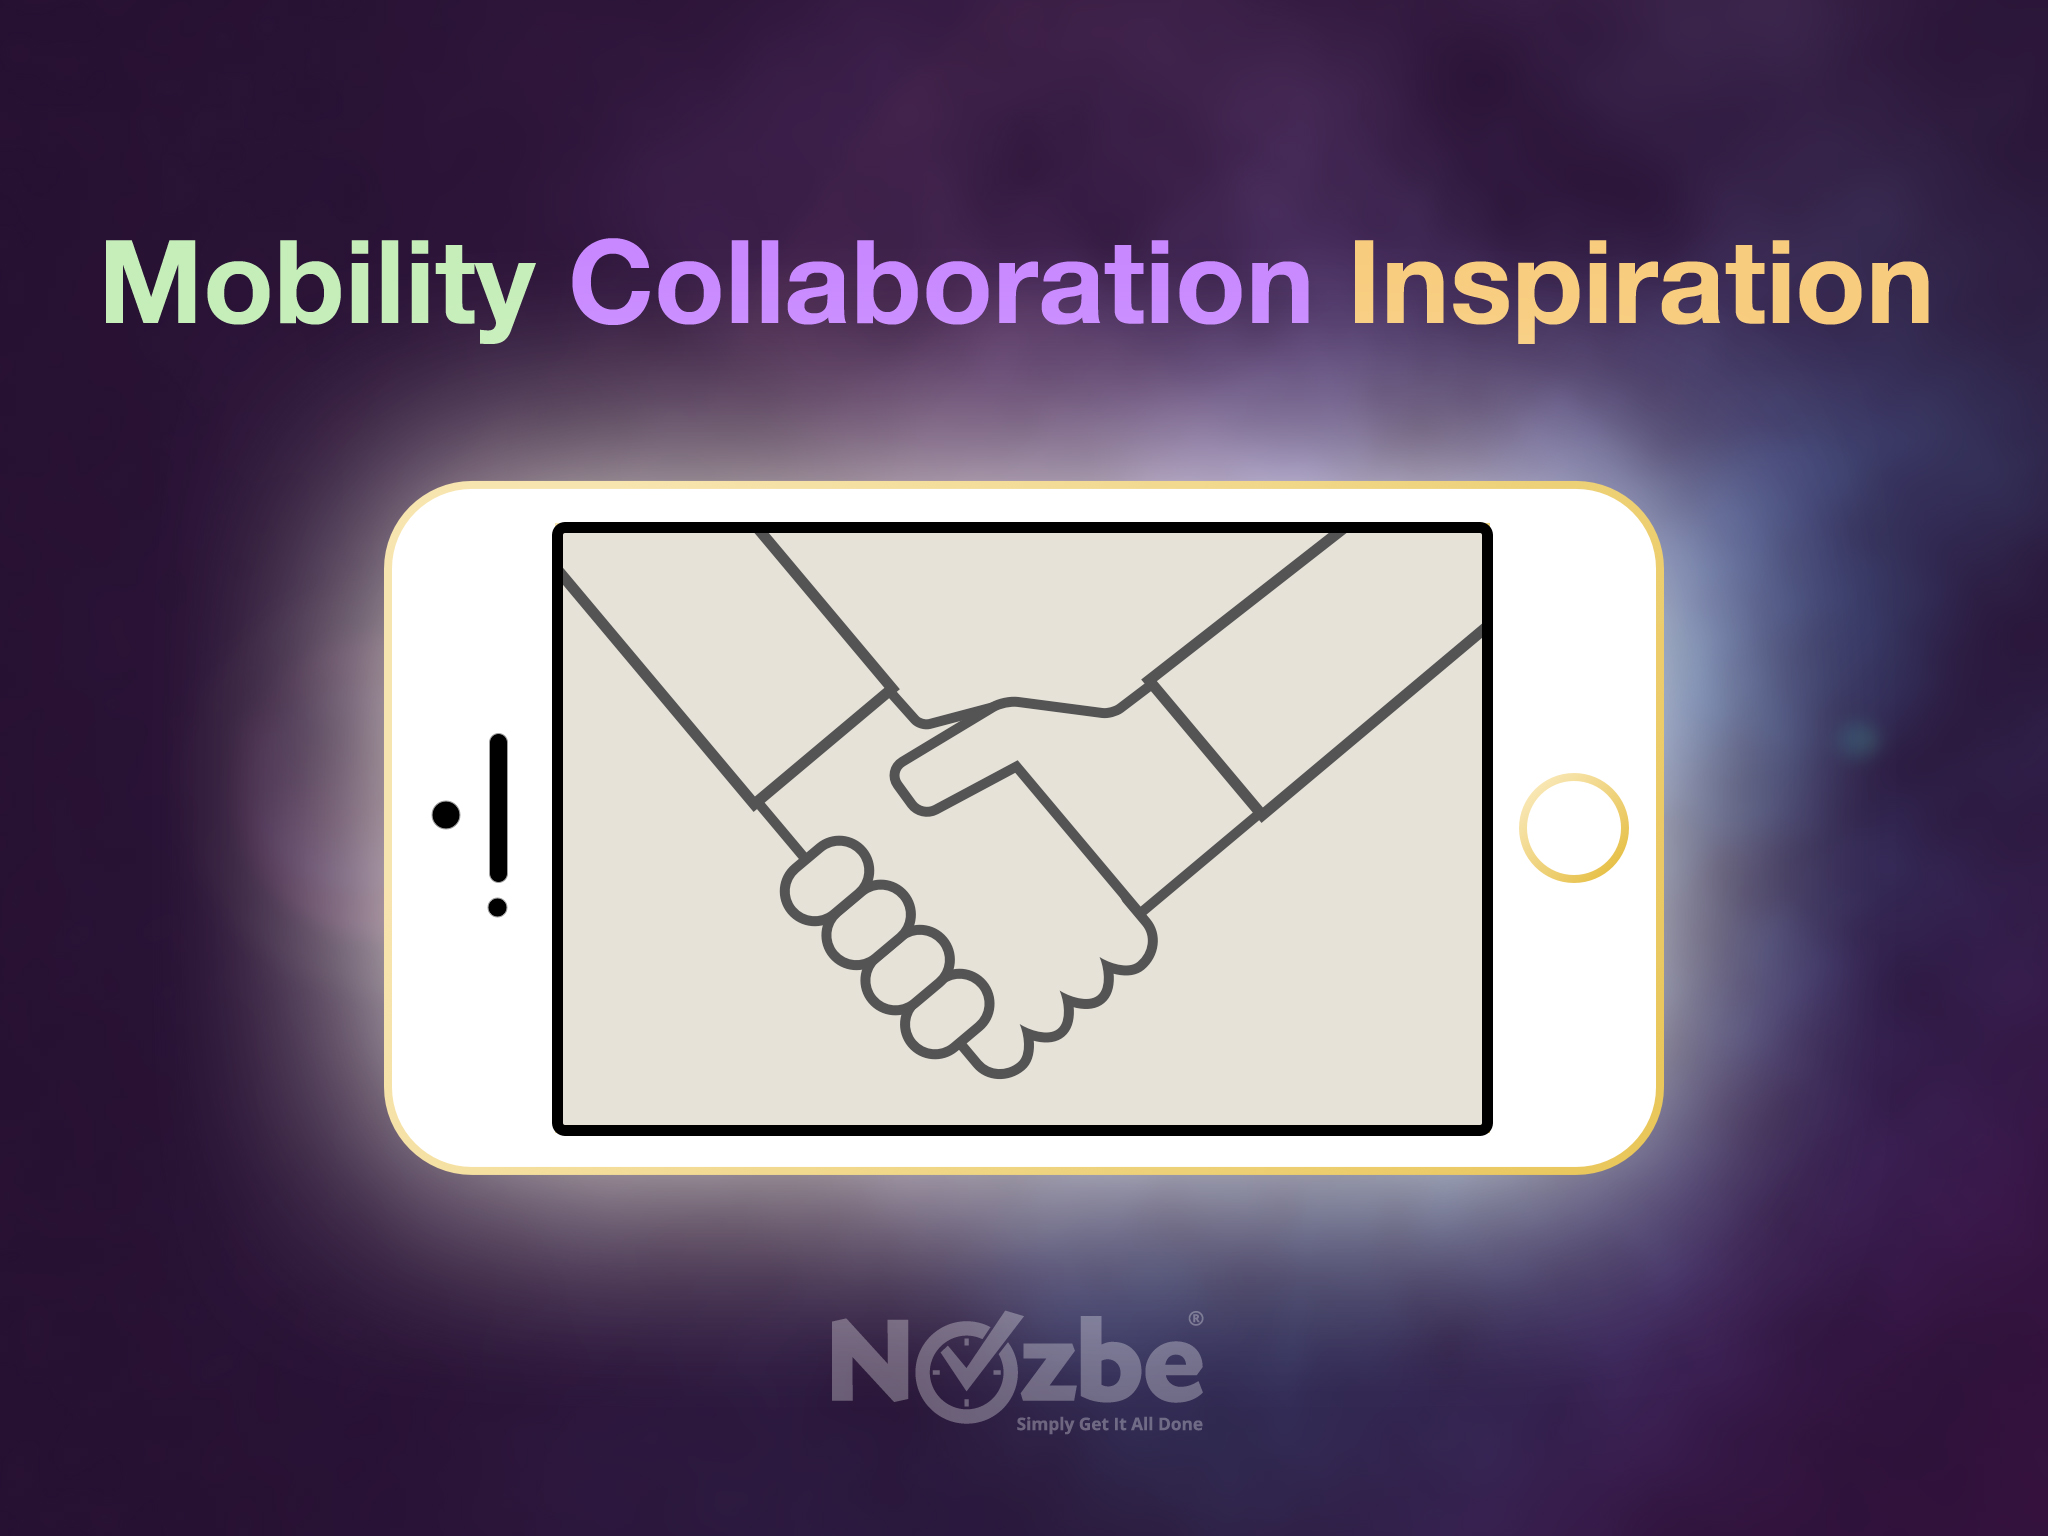 Mobility, collaboration, inspiration